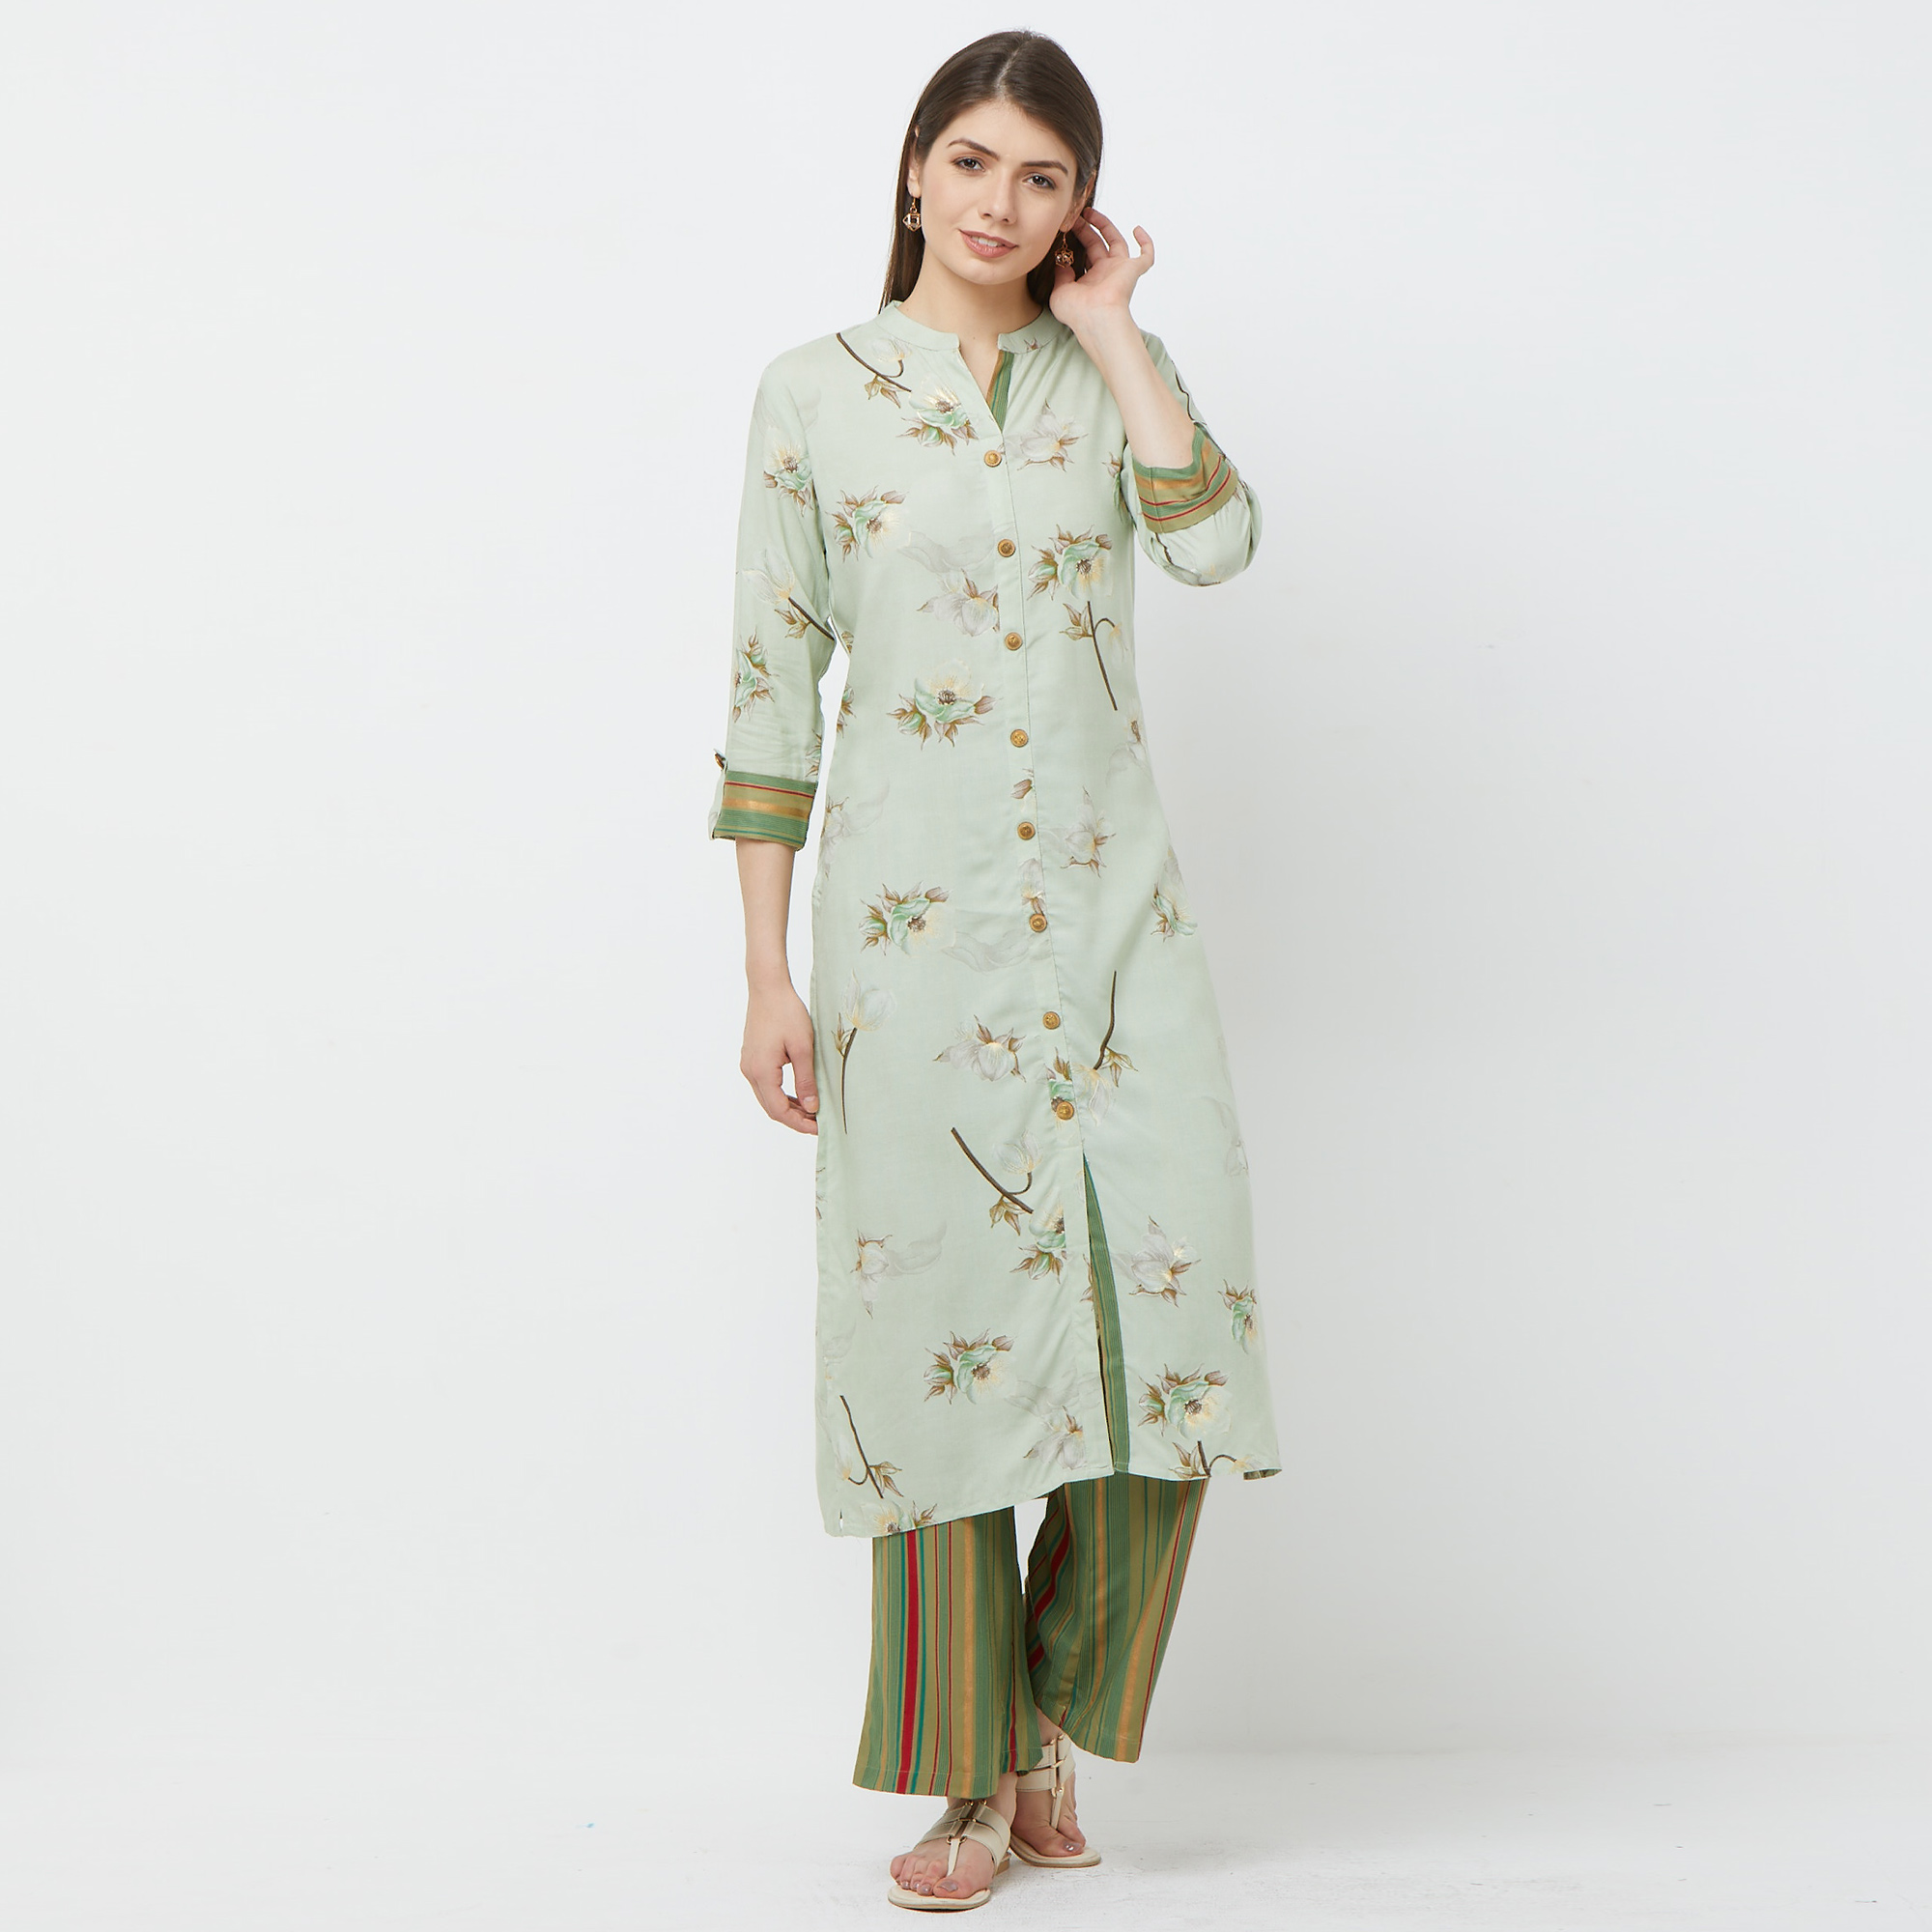 Intricate Mint Green Colored Casual Floral Printed Cotton Kurti-Palazzo Set